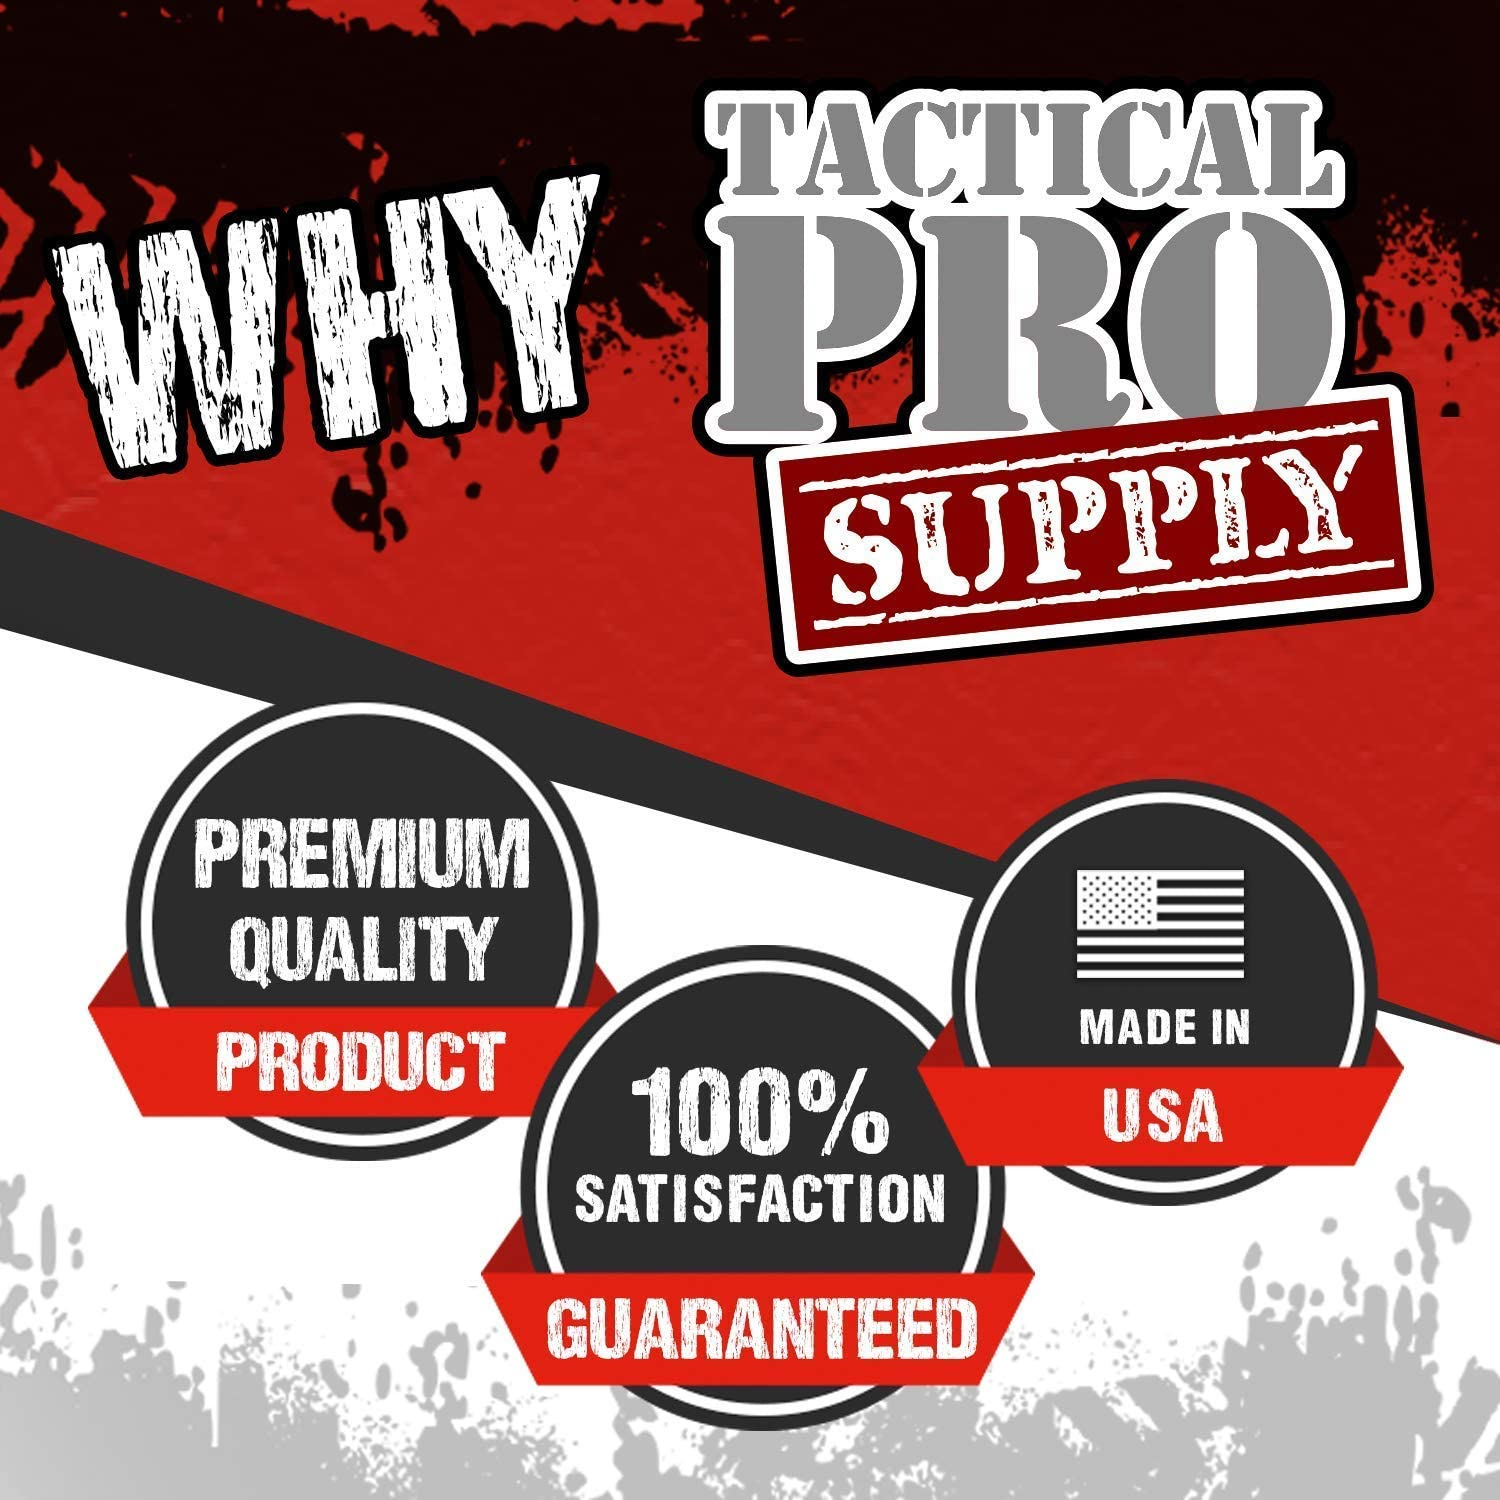 Tactical Pro Supply Army American Camo Flag Hoodie Cotton Polyester Materials Machine Wash Cold for Men Women Outdoor